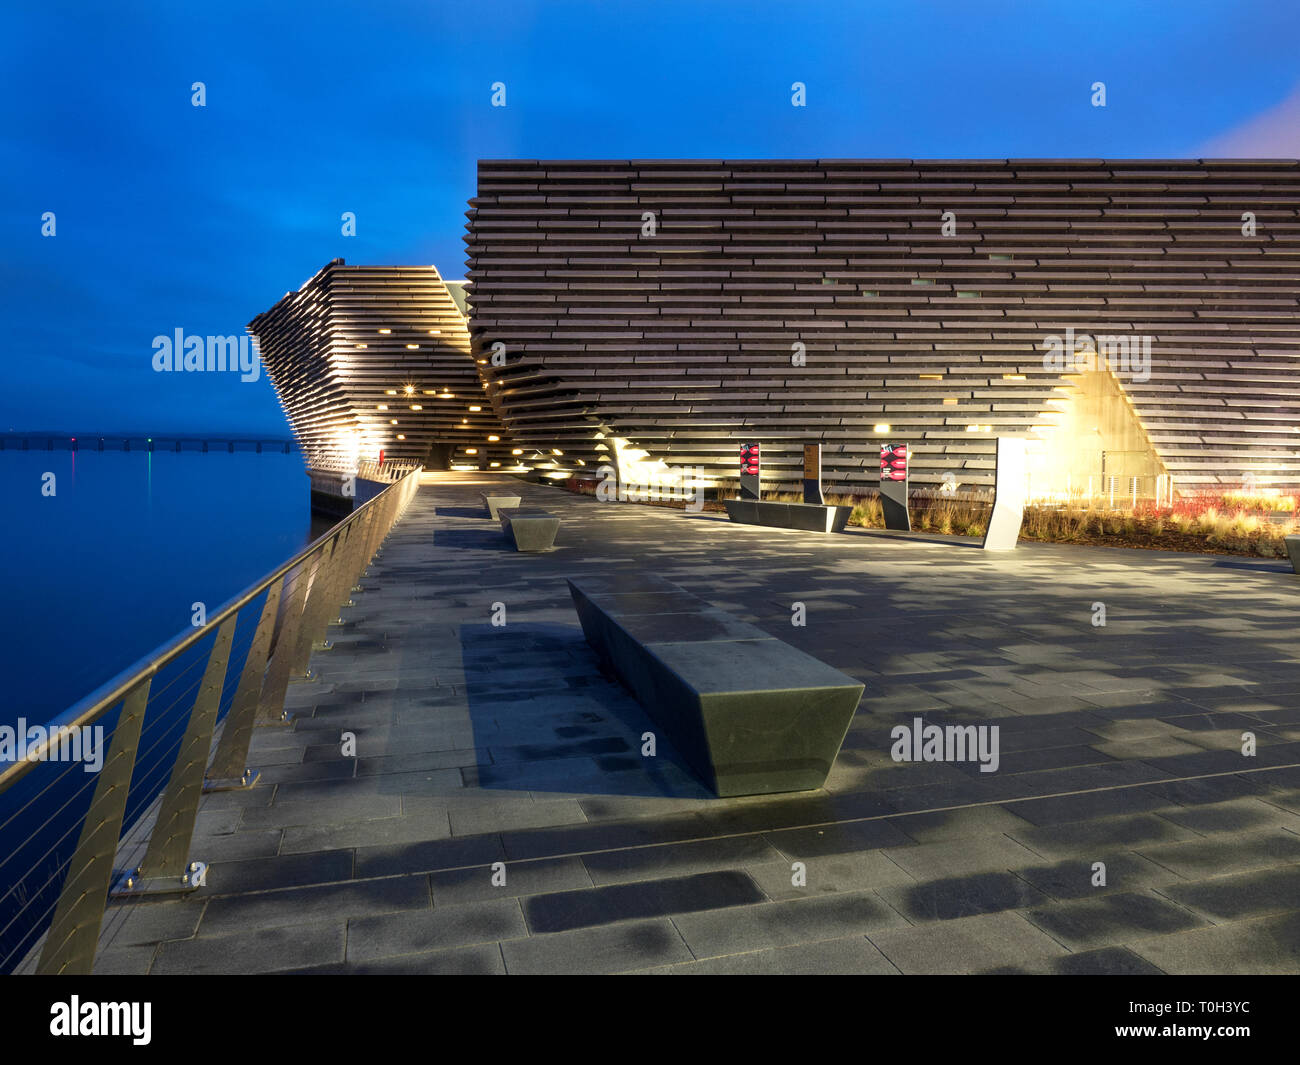 V&A Dundee design museum designed by Kengo Kuma at Riverside Esplanade Dundee Scotland - Stock Image